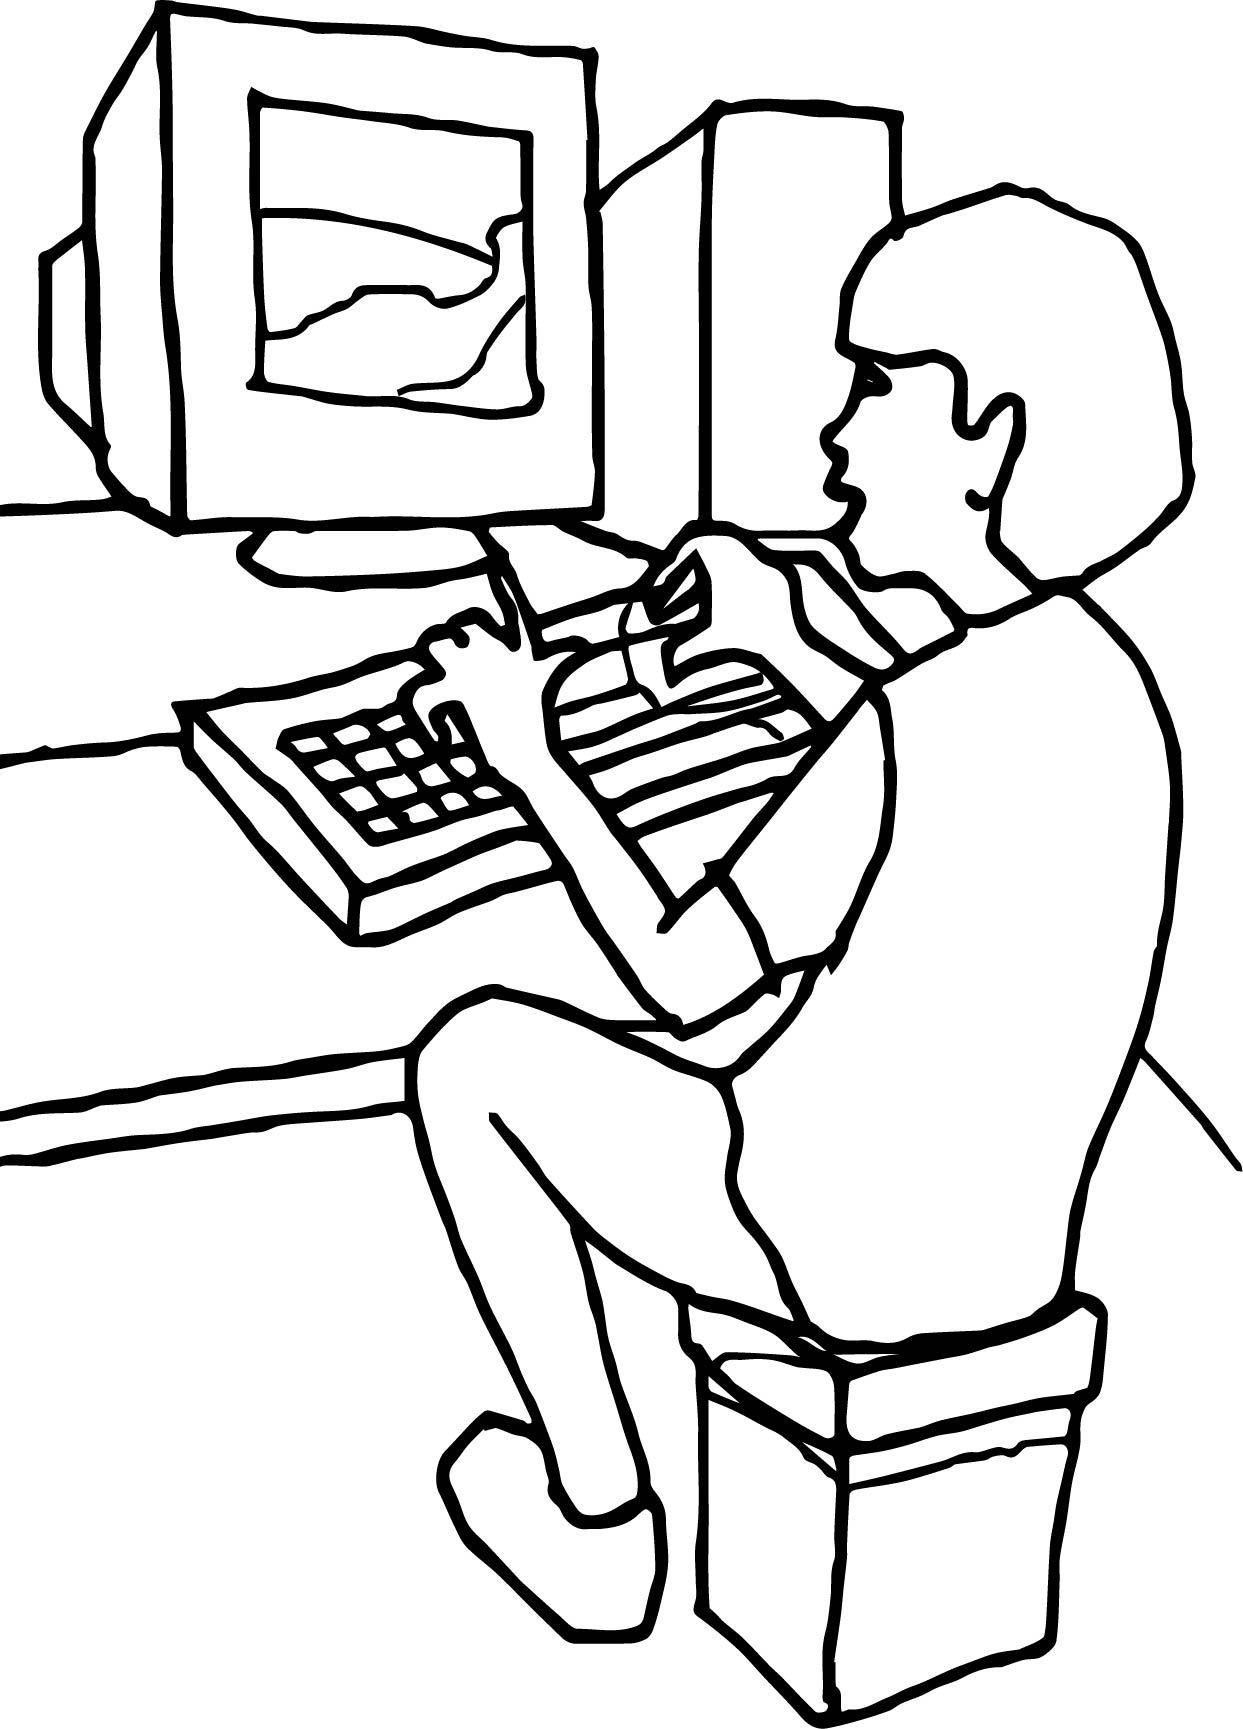 Video Game Coloring Pages For Boys Video Best Free